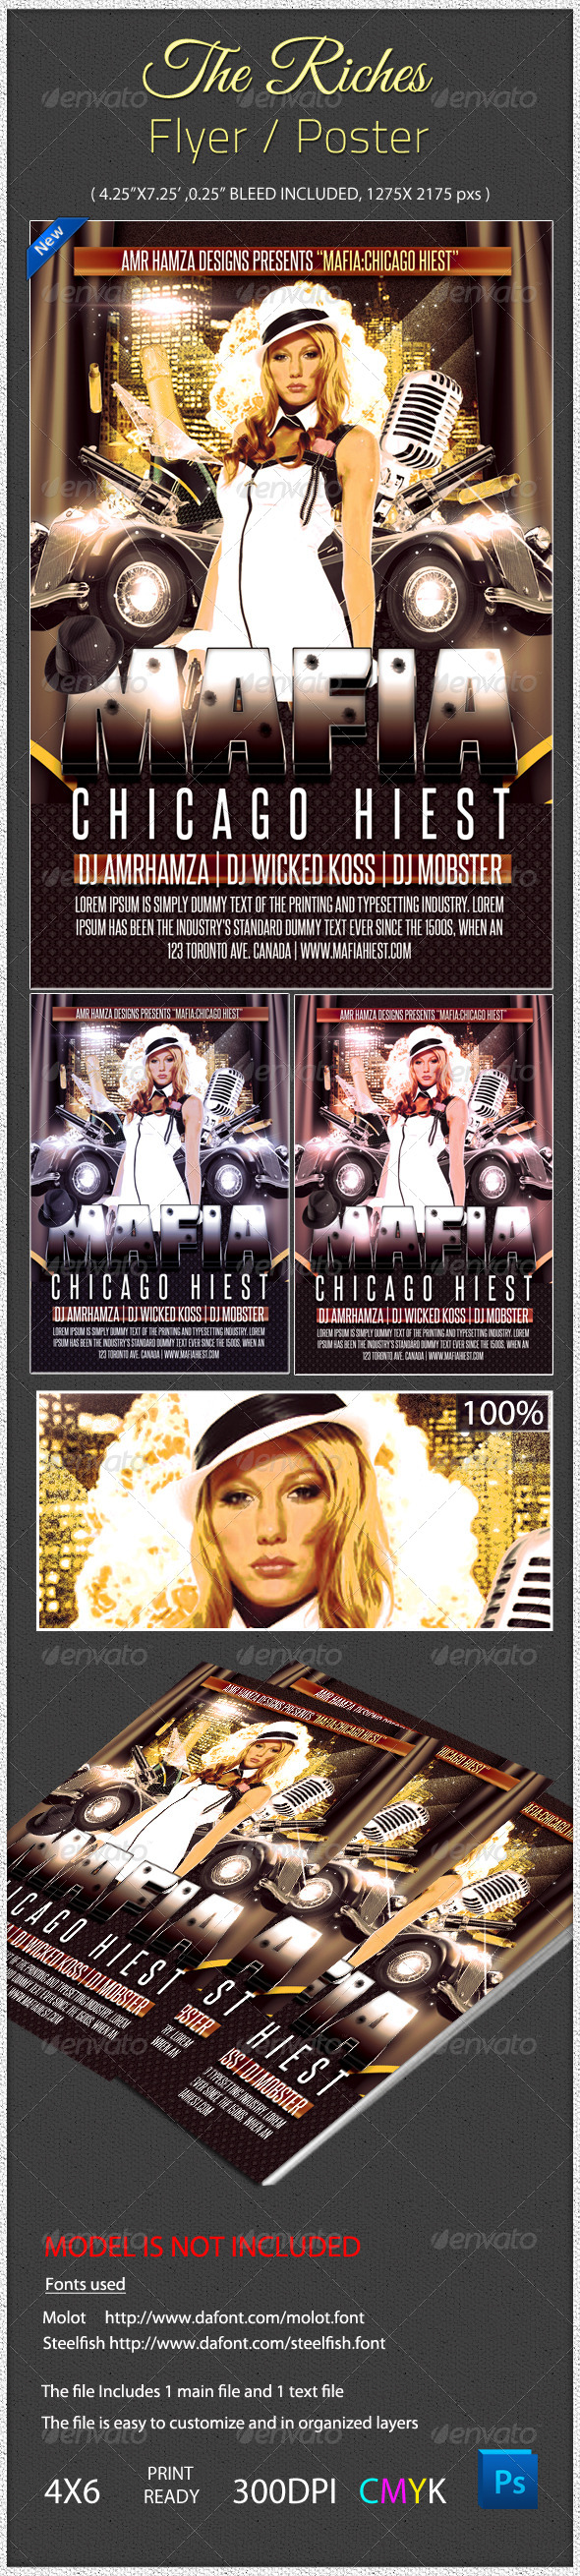 GraphicRiver Chicago Hiest Gangster Theme Flyer 5231206